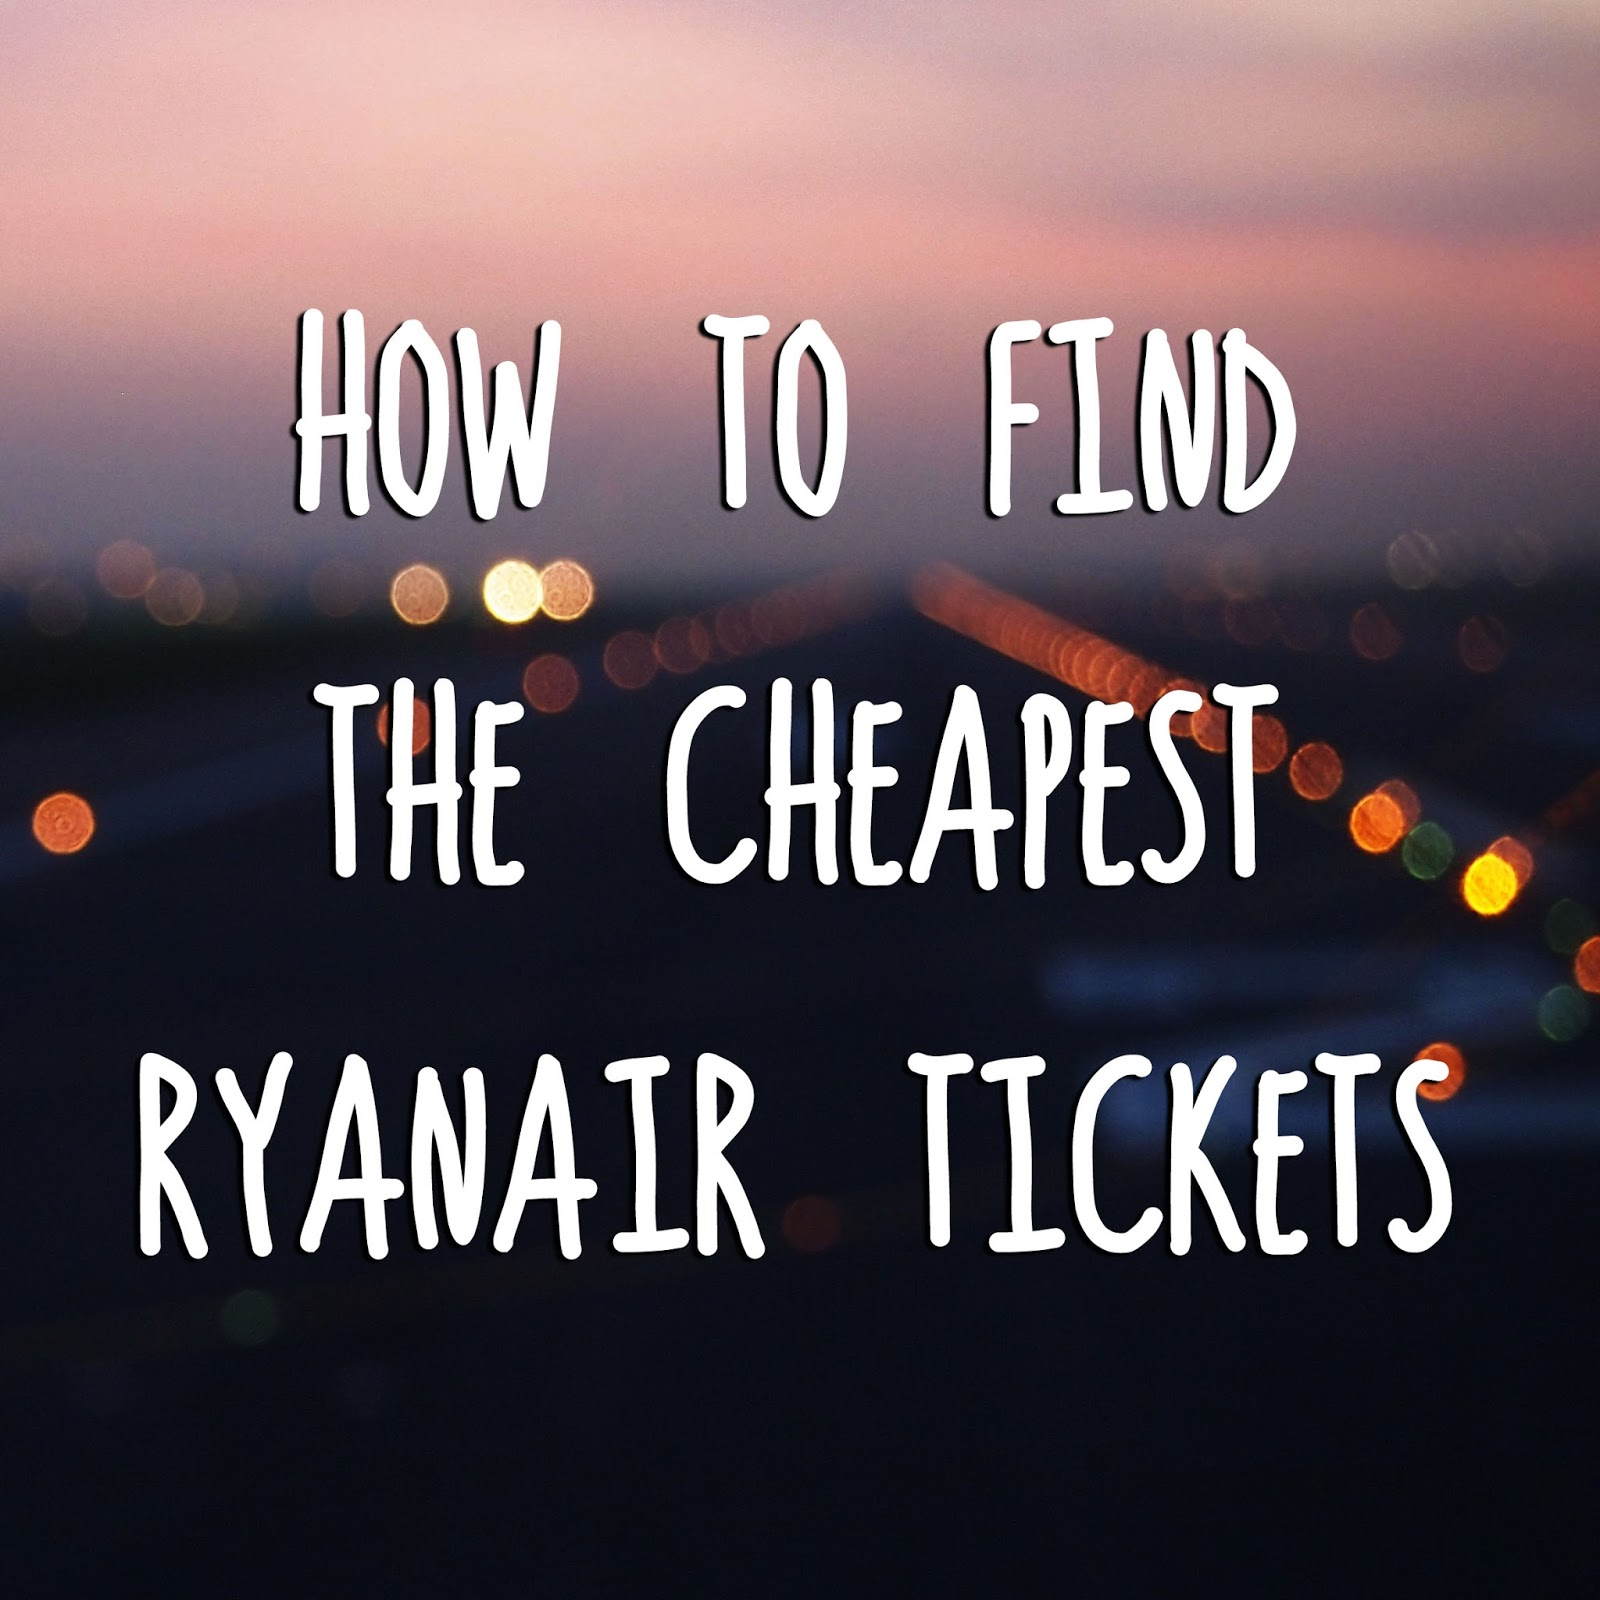 How to find the cheapest Ryanair tickets - the art of cheap travel